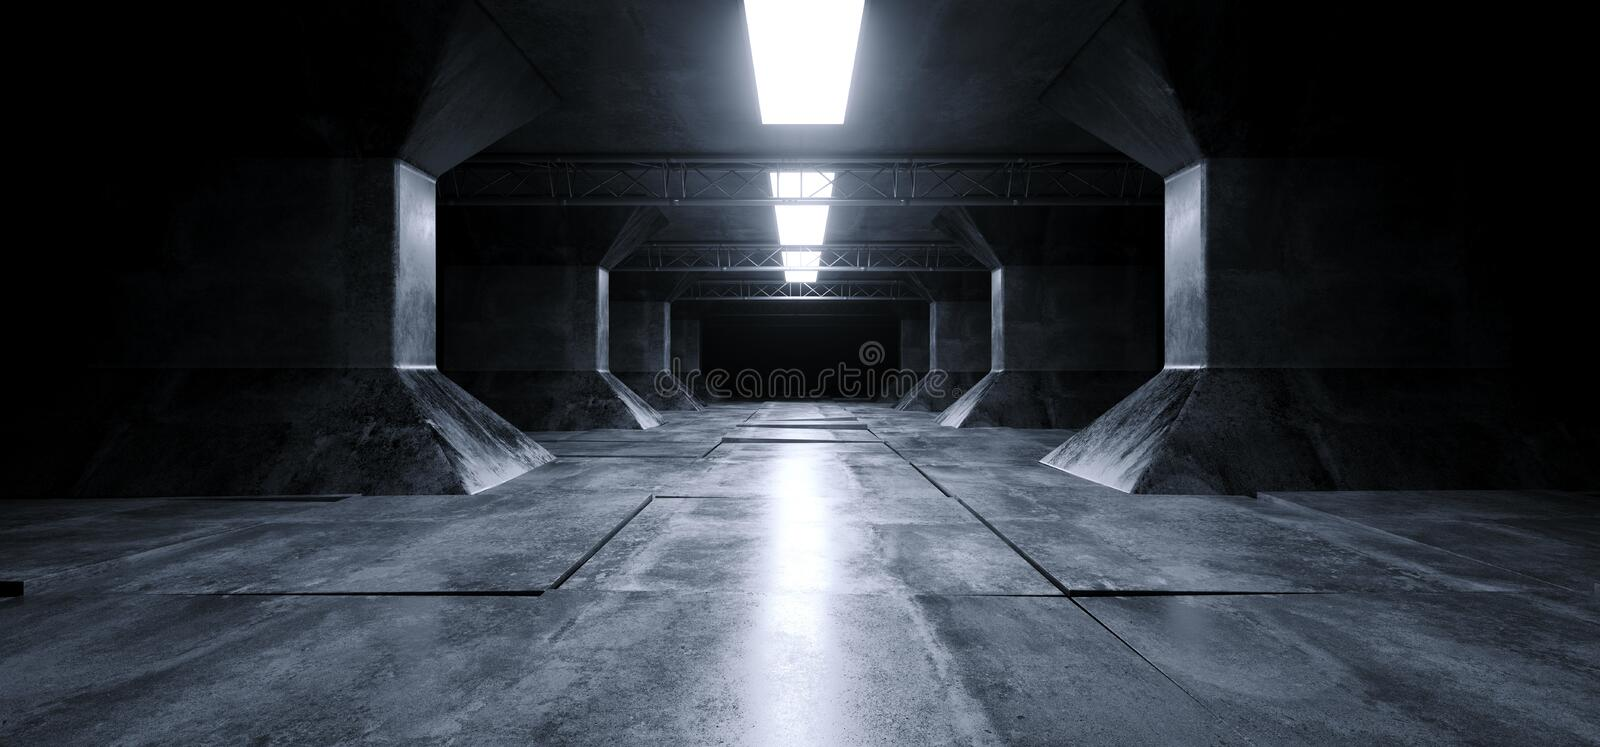 Sci Fi Futuristic Alien Ship Grunge Concrete Reflective Columns Corridor Spaceship Modern Blue White Neon Glowing Laser Led Tiled. Floor 3D Rendering royalty free illustration